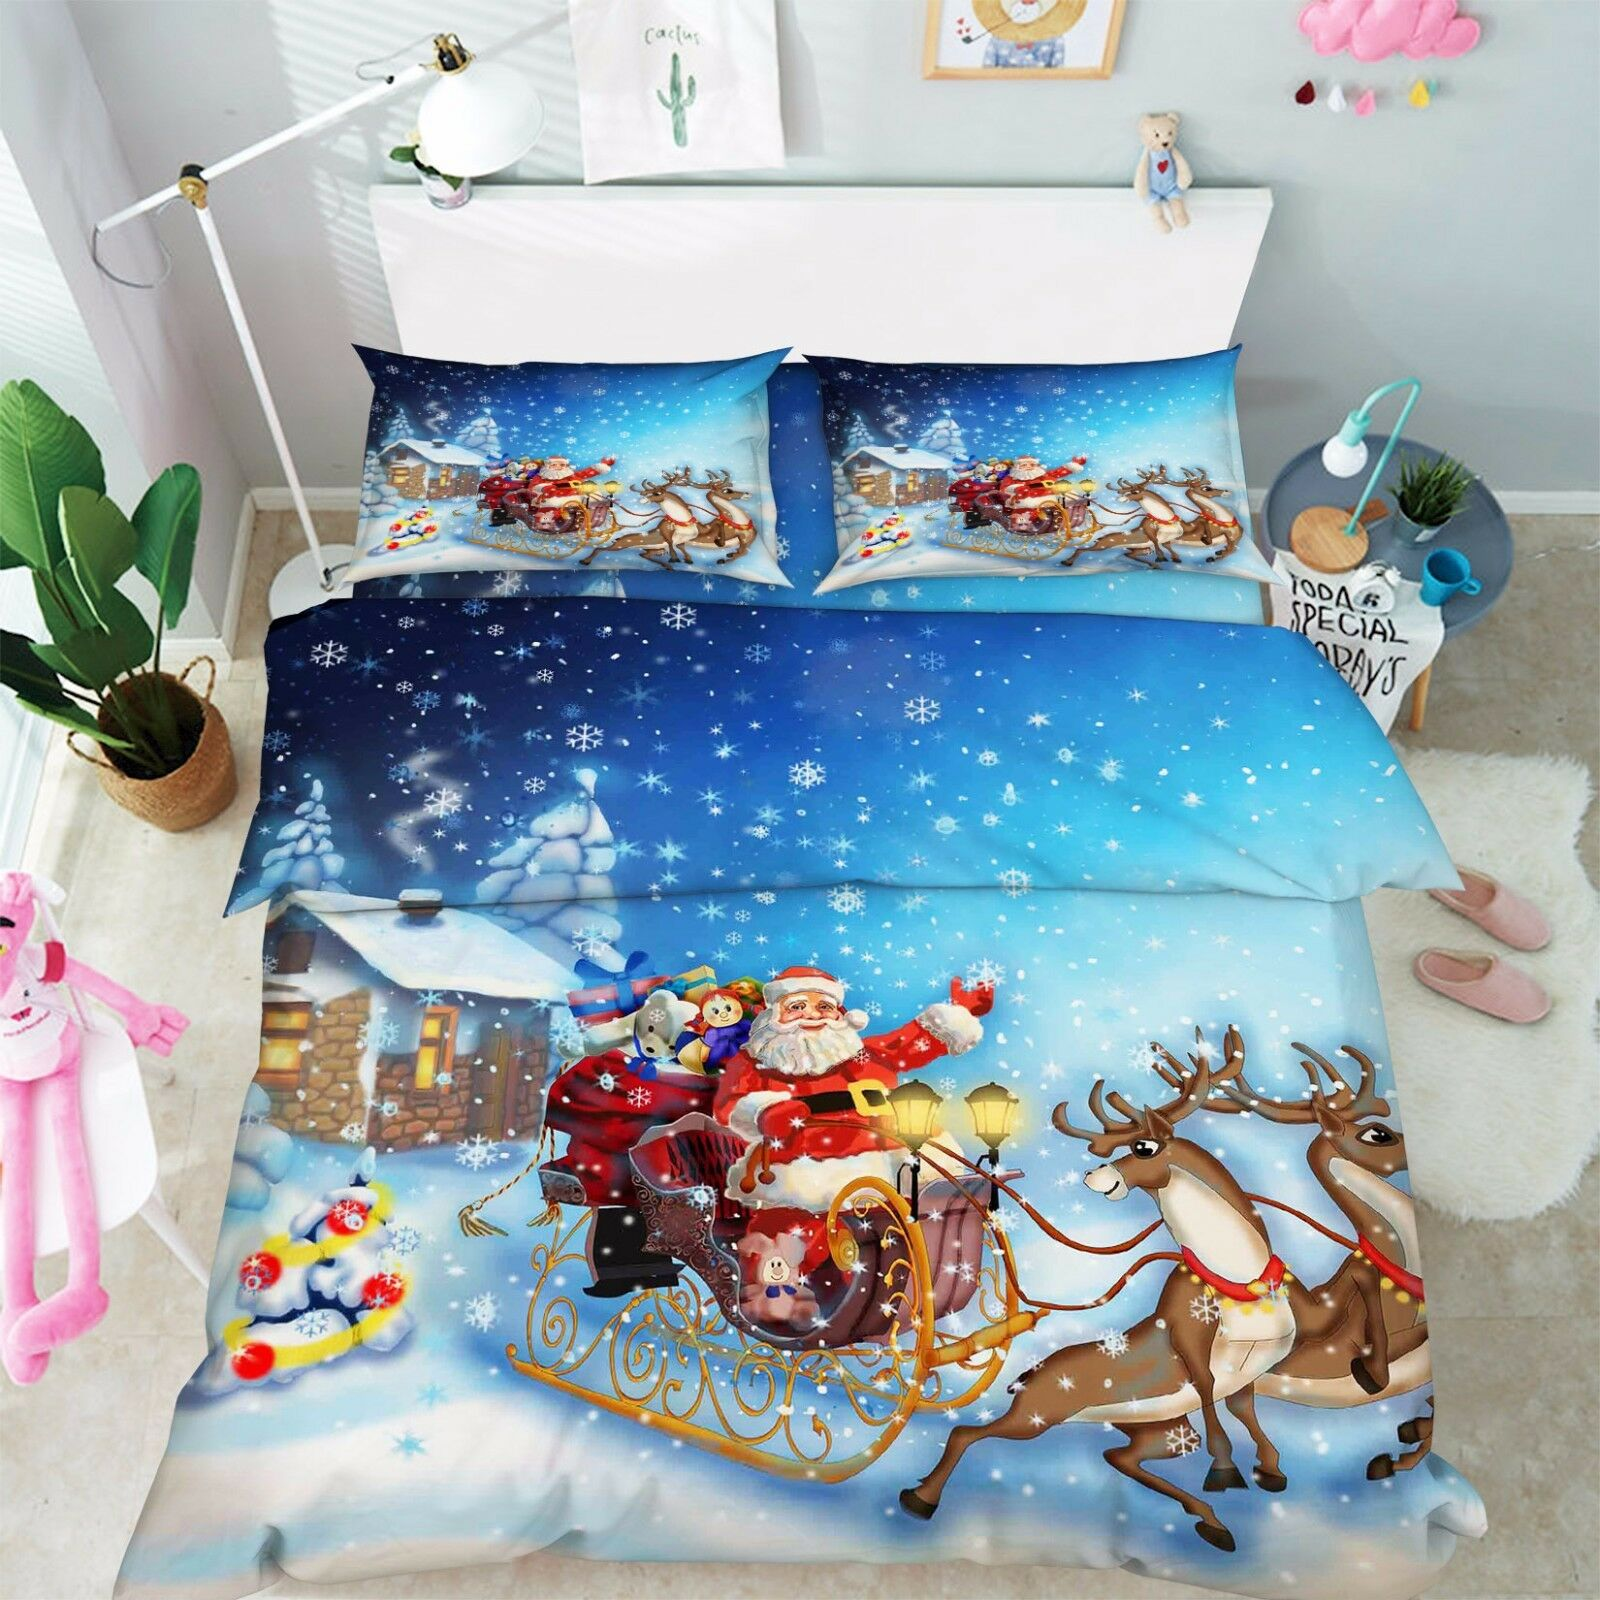 3D Santa Claus 732 Bed PilFaiblecases Quilt Duvet Cover Set Single Queen AU Lemon